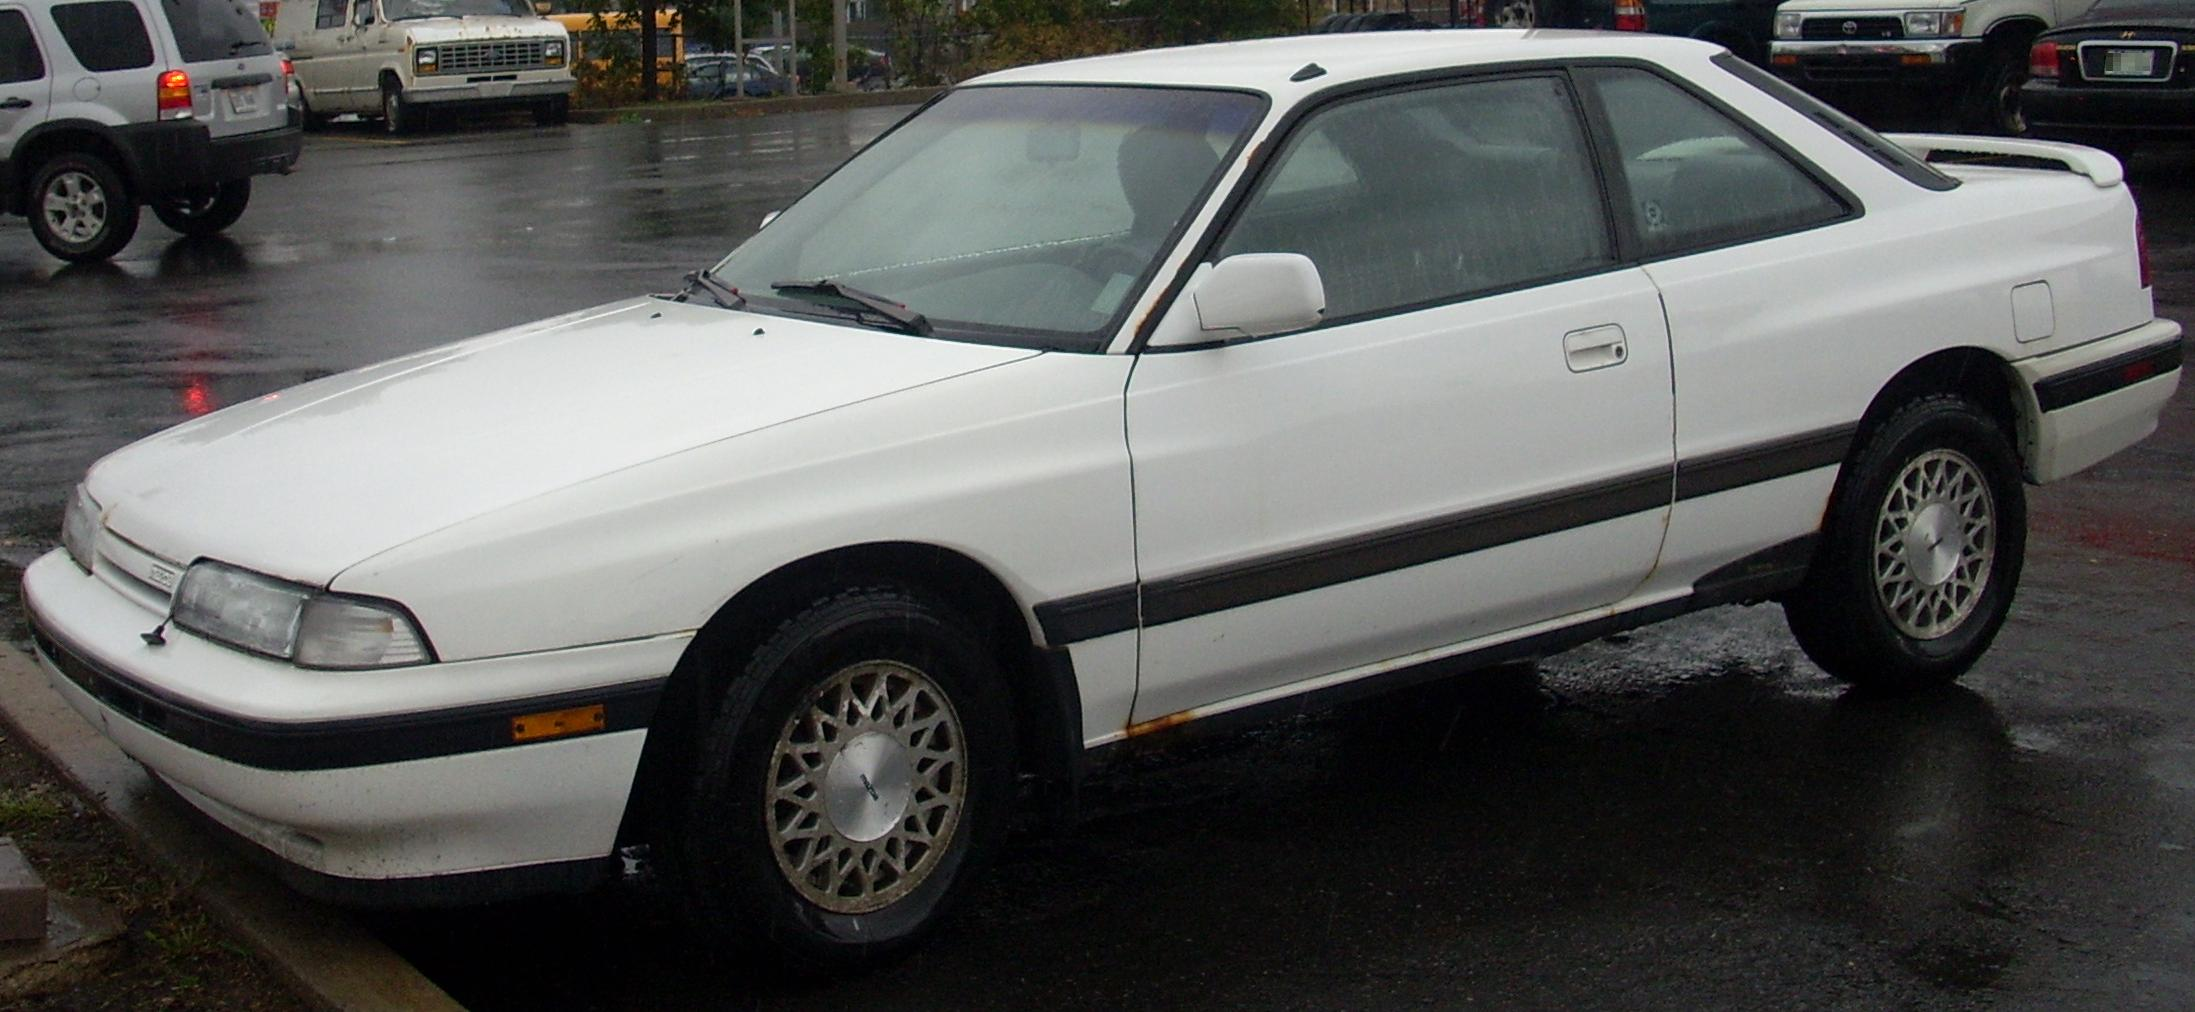 White Mazda Capella 1988